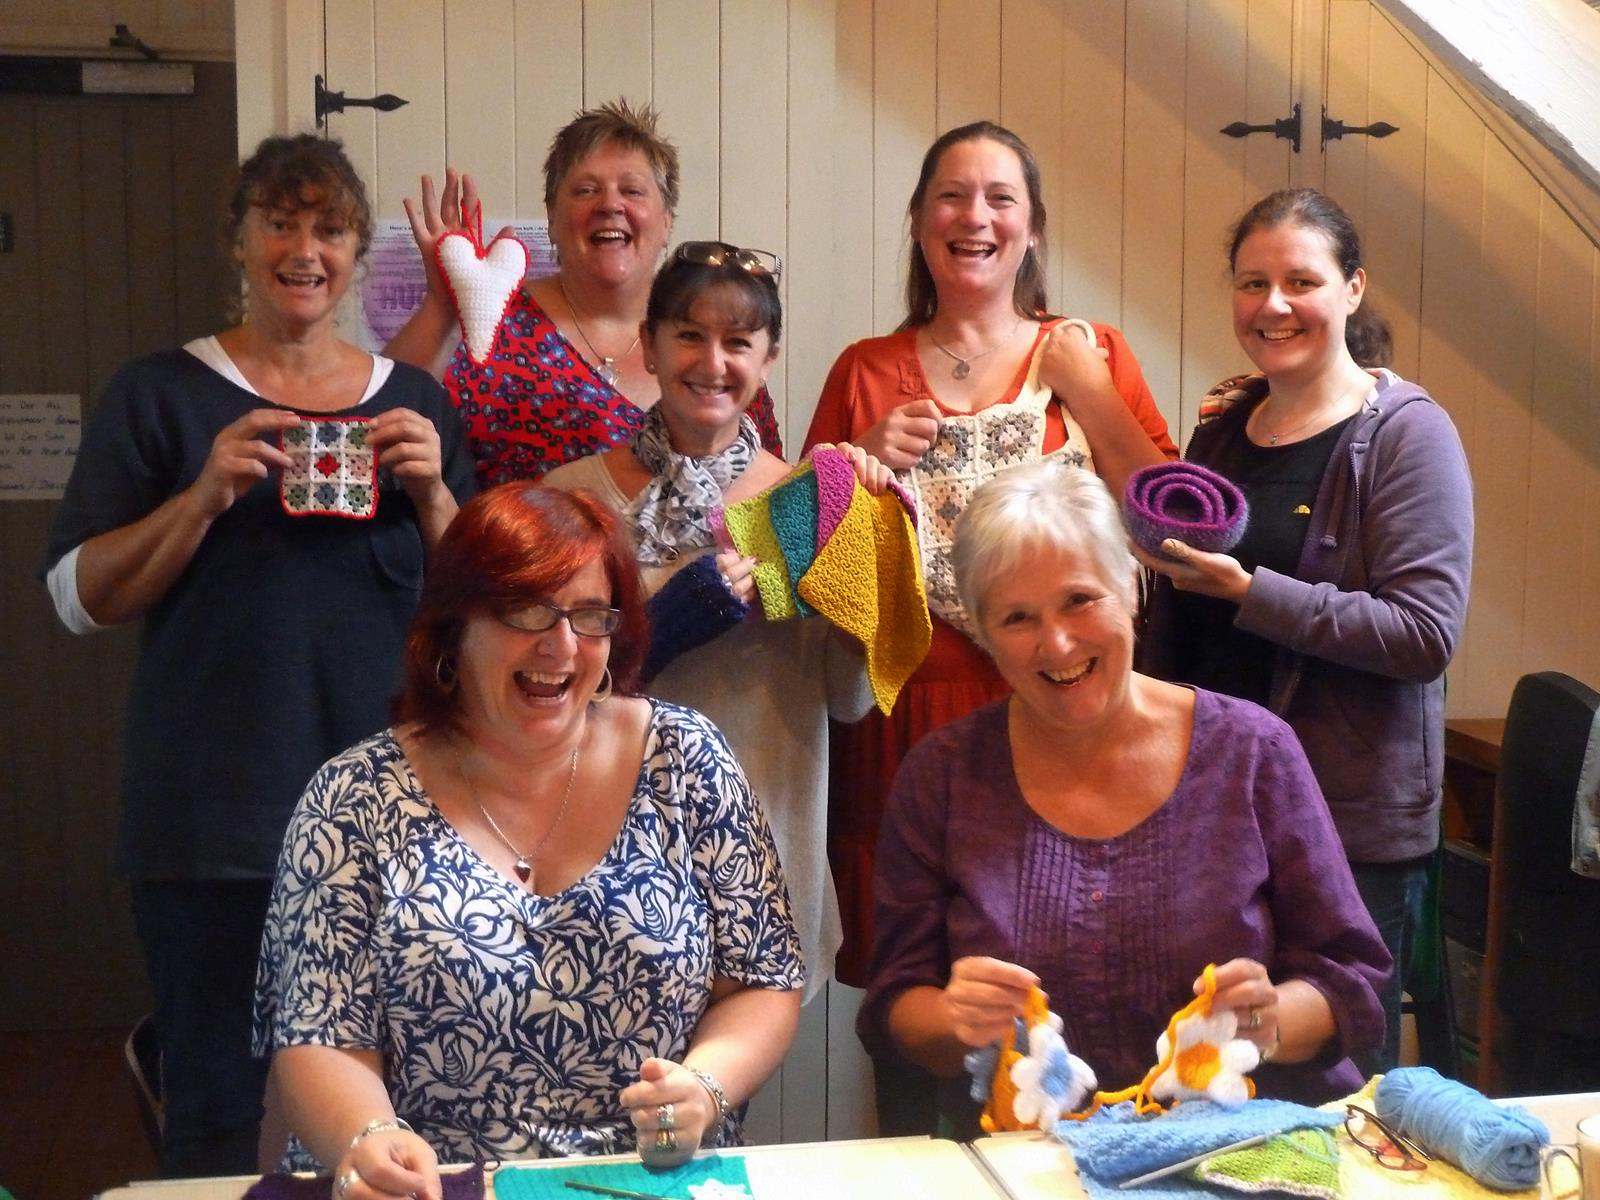 Crocheting Groups : Crochet group sep13-2